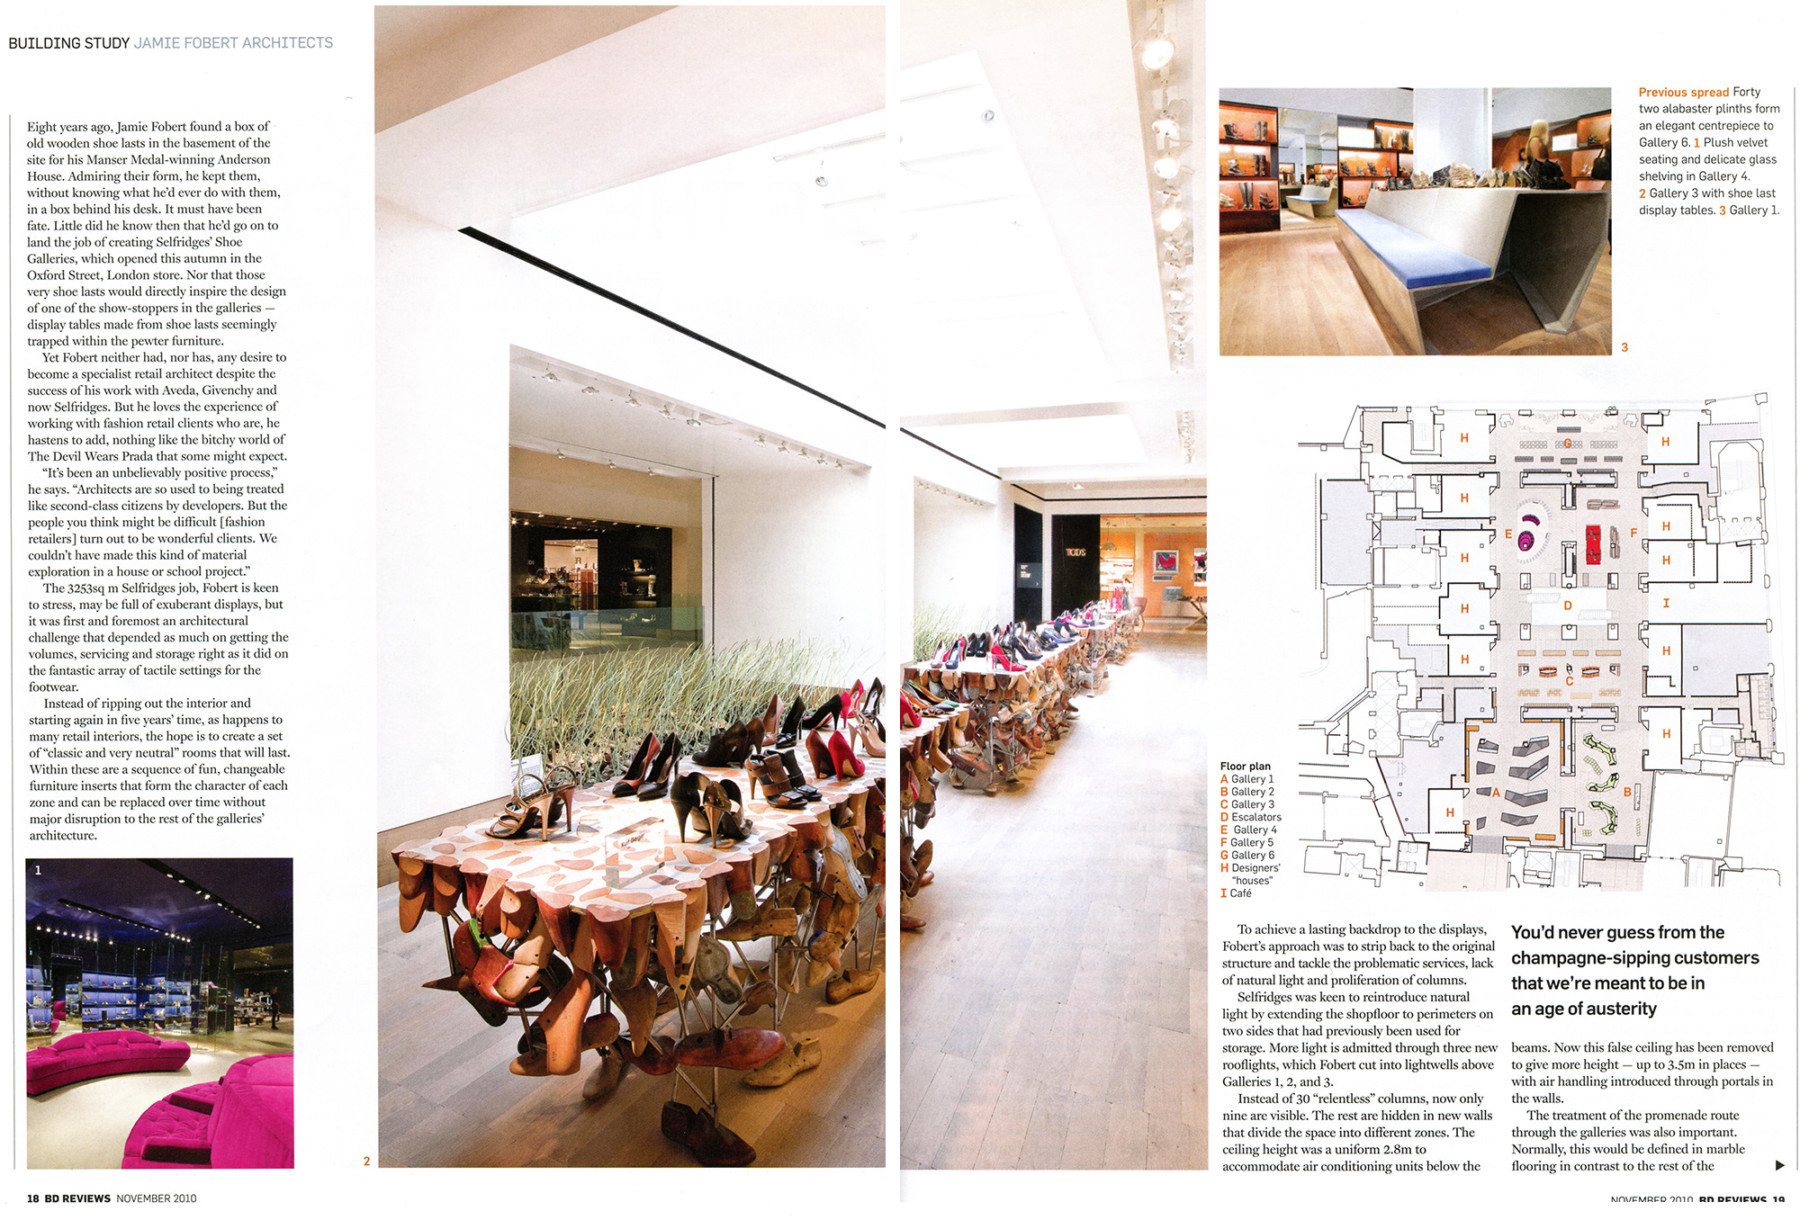 Jamie-Fobert-Architects-Selfridges-Shoes-Article-Press-BD 2